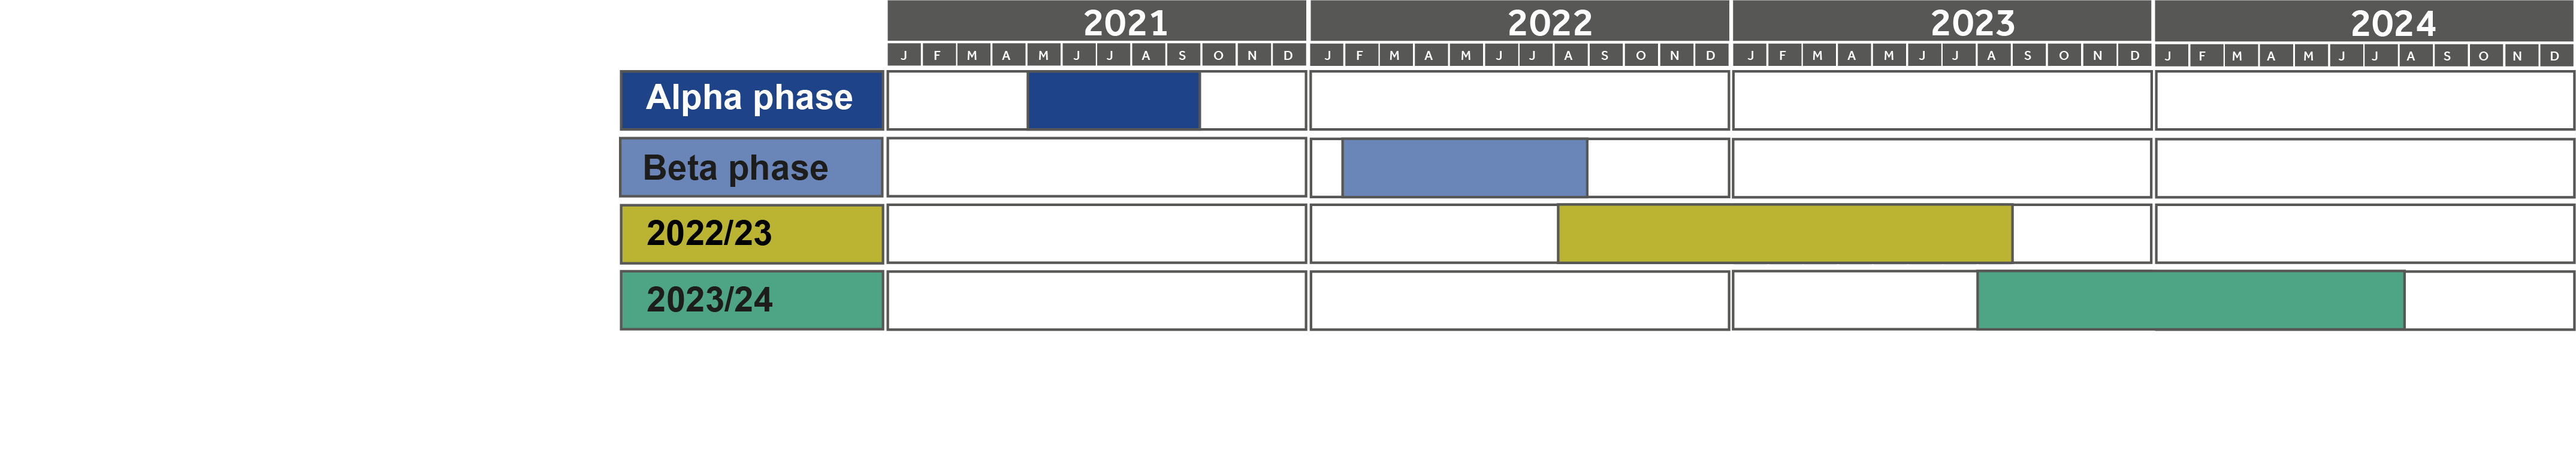 Data Futures timeline for Alpha phase, Beta phase, 2022/23 collection and 2023/24 collection